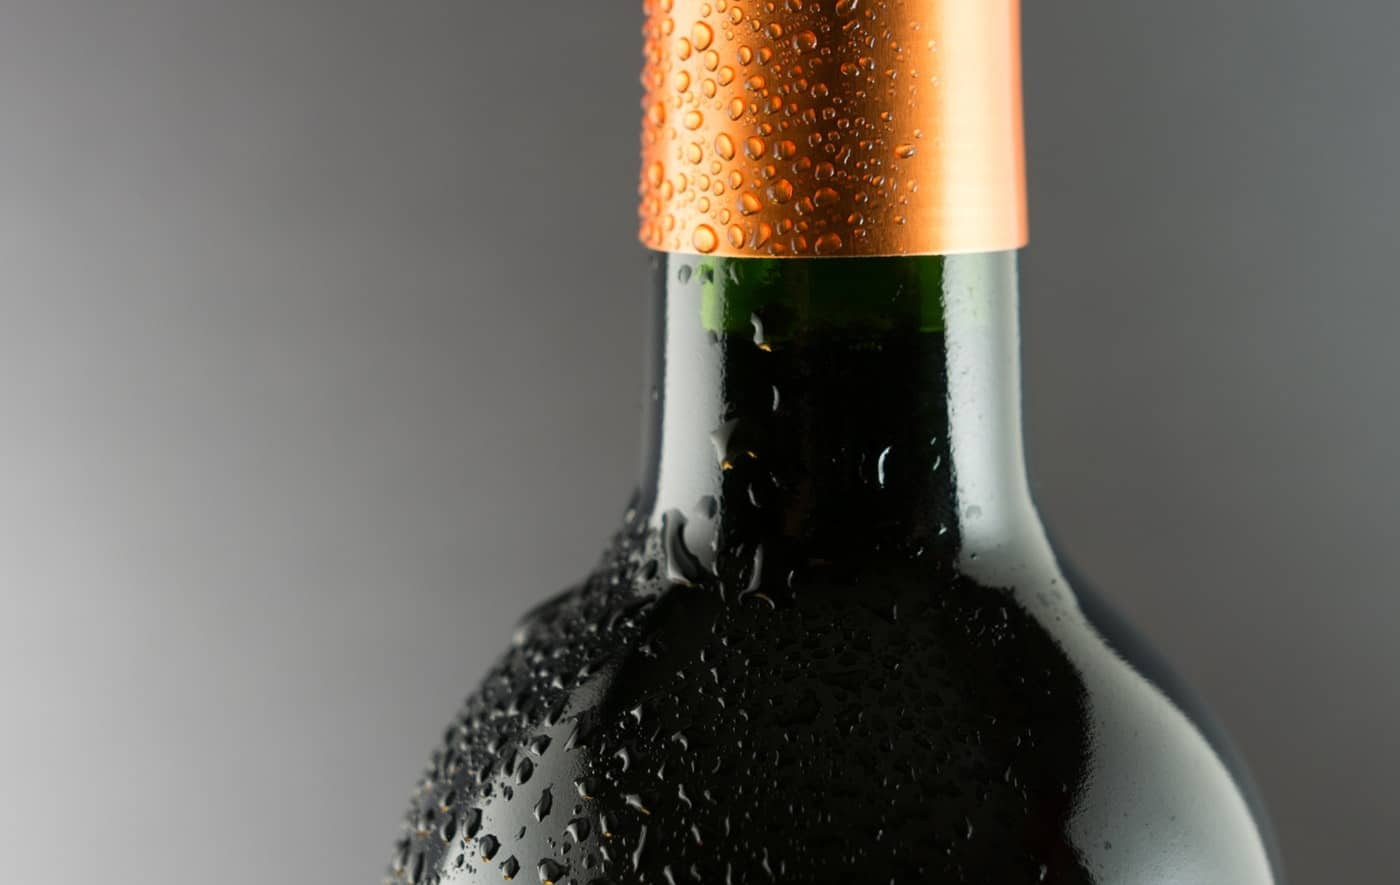 Dew on a wine bottle